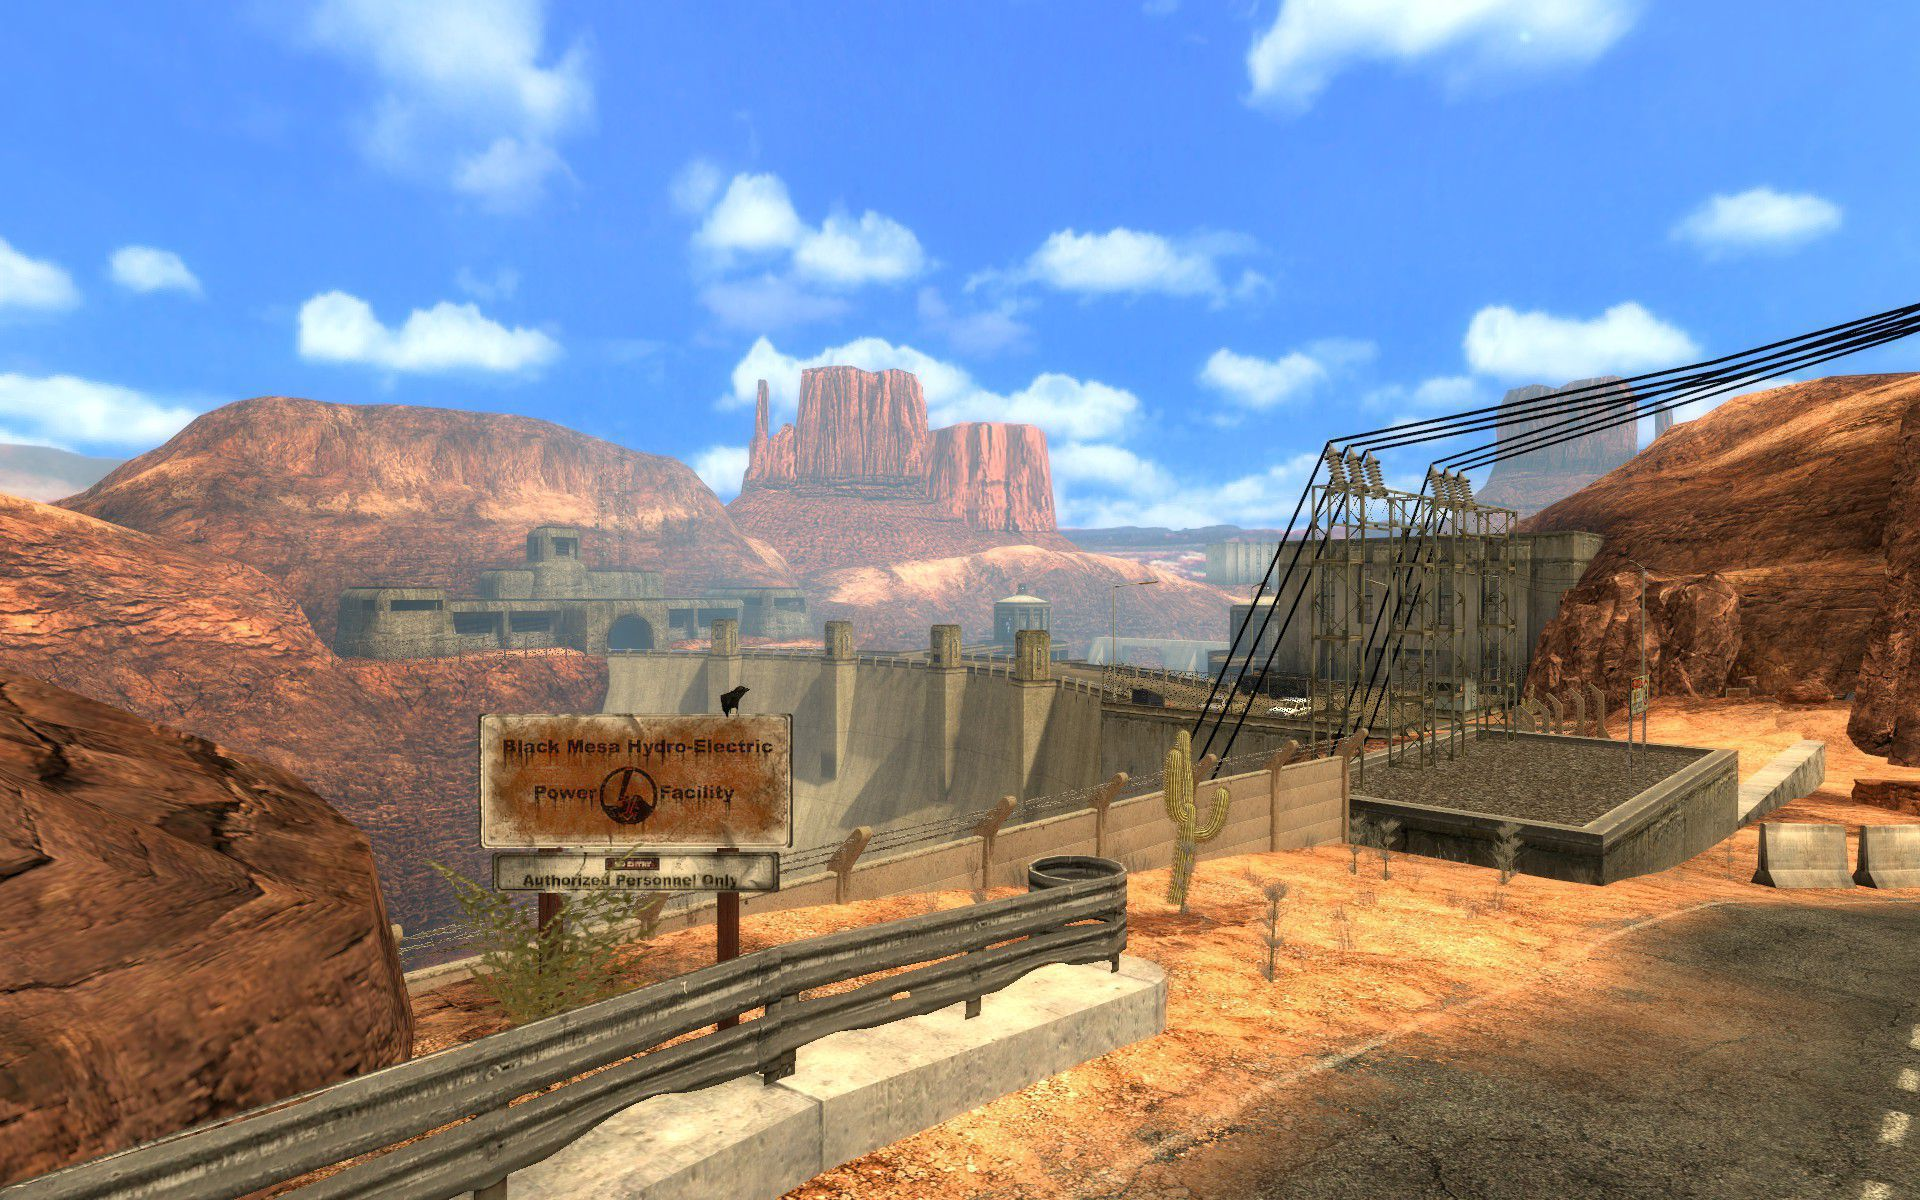 Black Mesa Source Photos